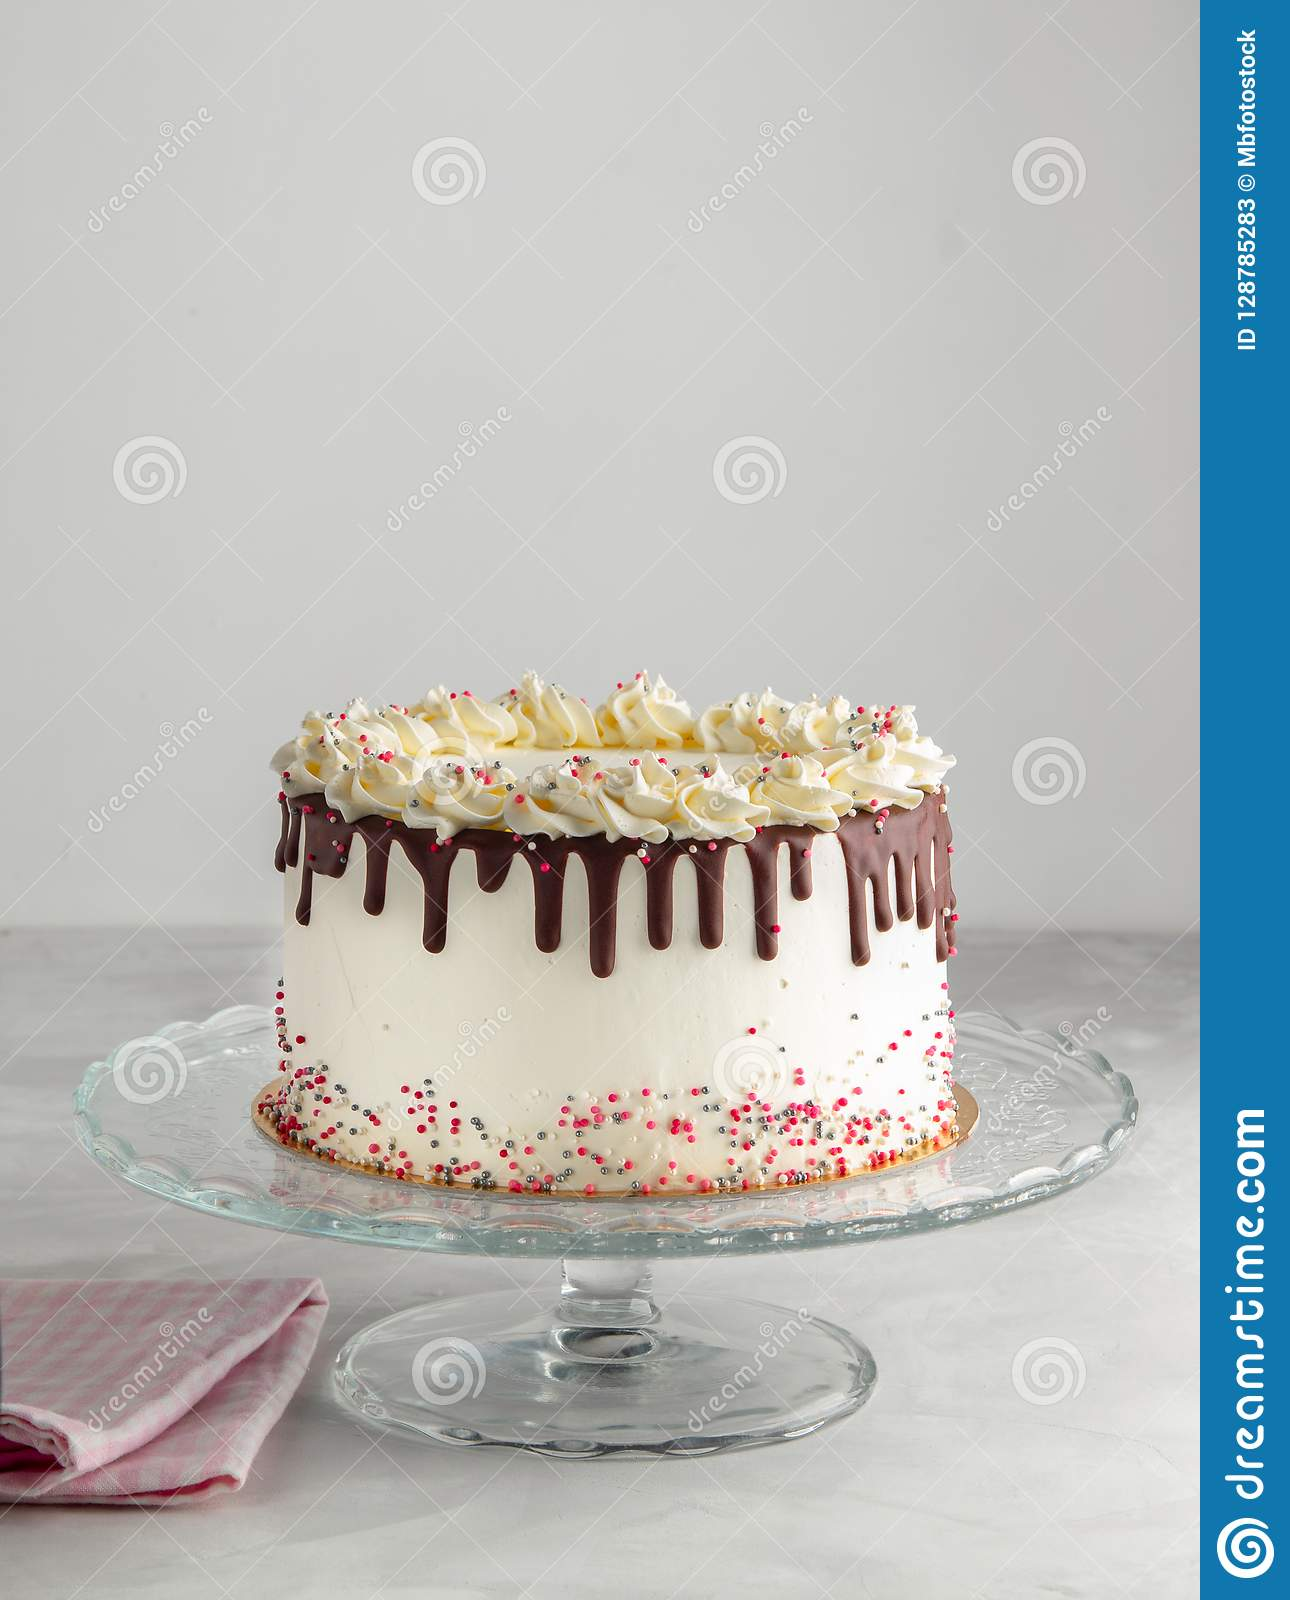 Birthday Drip Layered Cake with chocolate ganache and sprinkles on a white background with party decor. Horizontal. Copy space. Ce